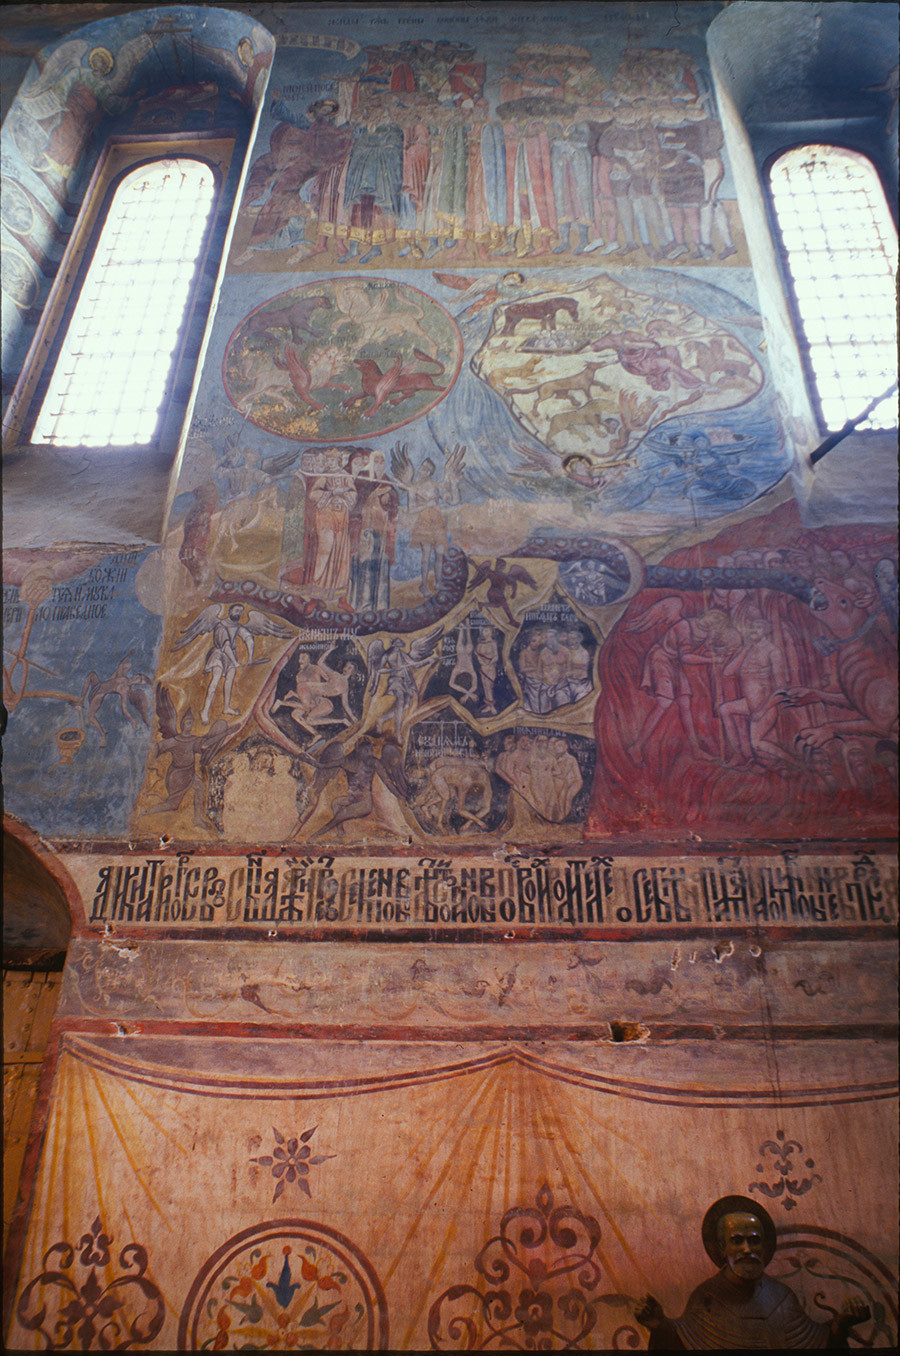 Cathedral of the Annunciation. West wall frescoes, Last Judgement with depiction of sinners in hell. June 26, 1999